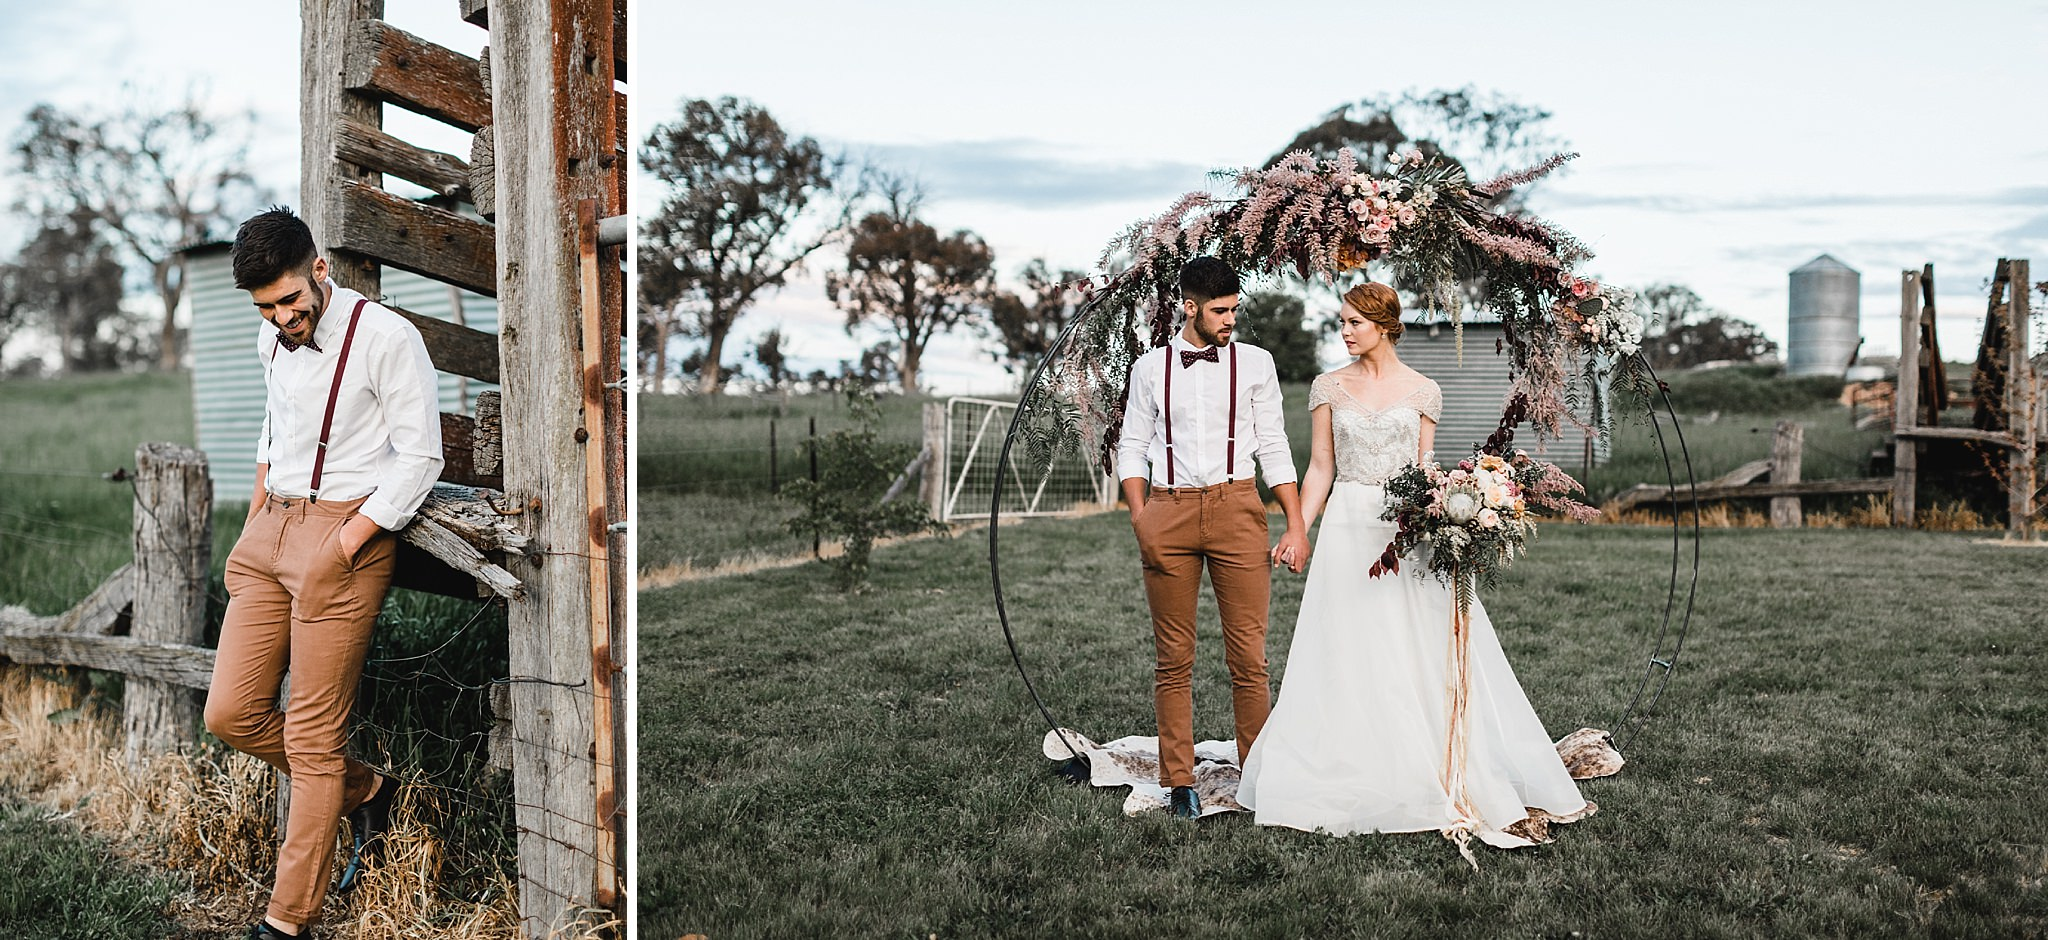 wedding photo locations canberra